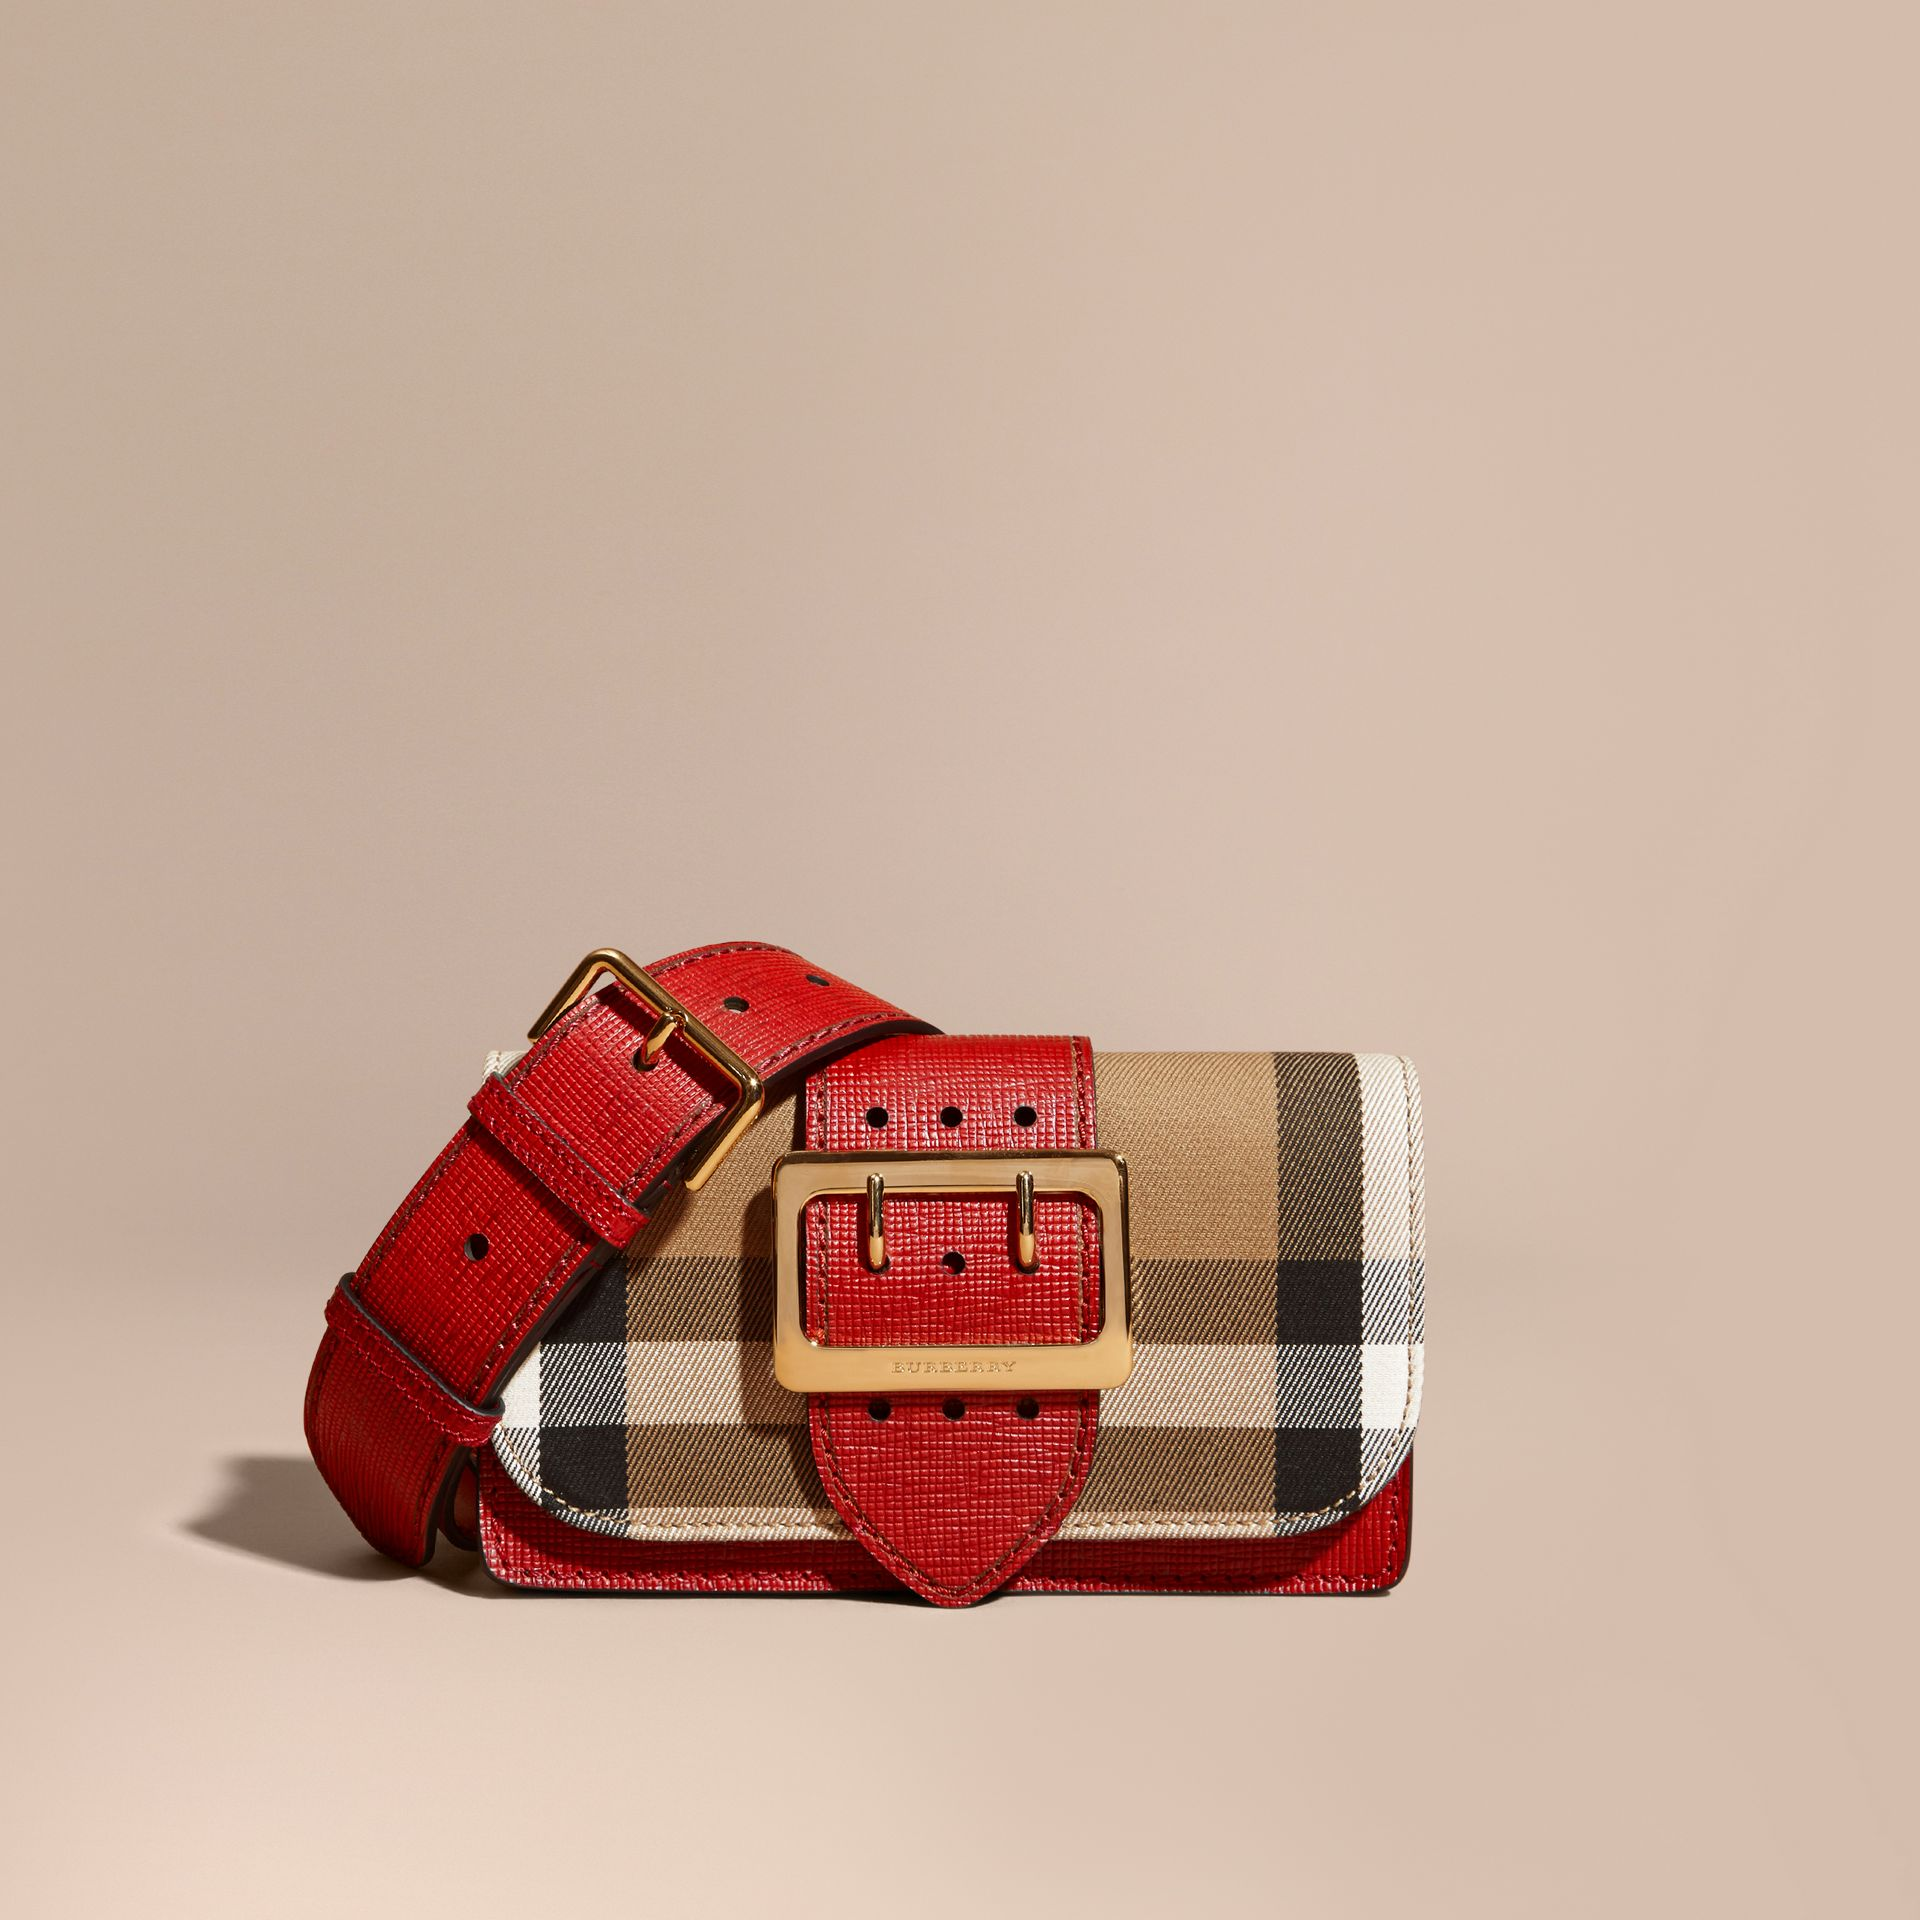 The Small Buckle Bag in House Check and Leather in Military Red/military Red - Women | Burberry United States - gallery image 0